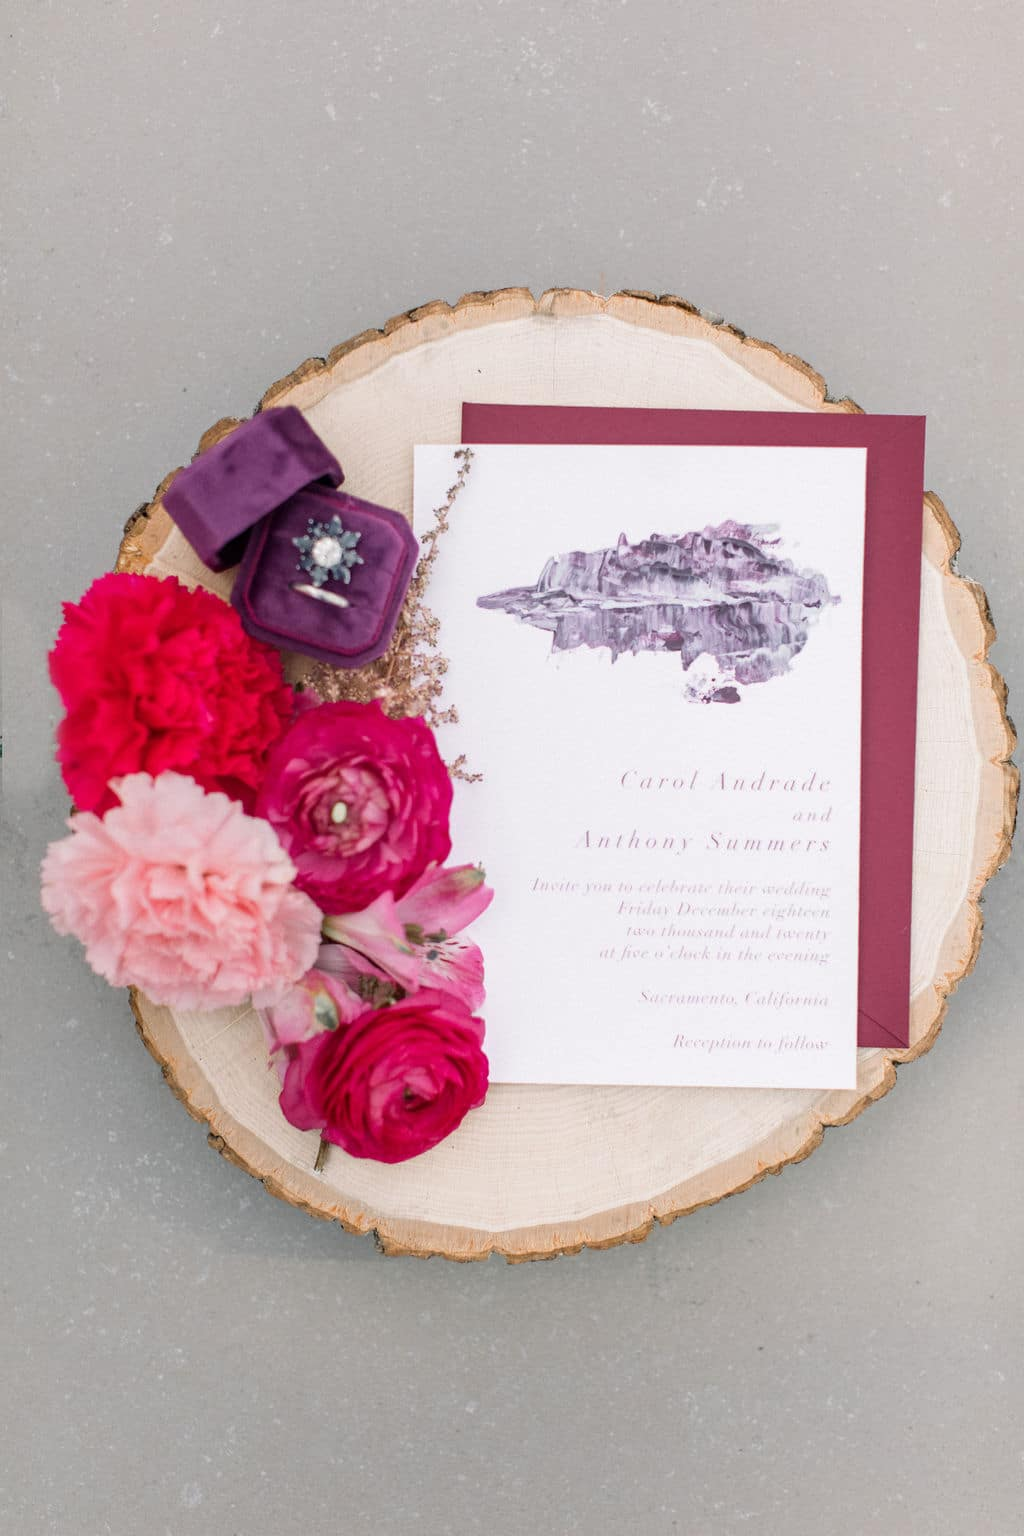 red and purple wedding invitation on round wooden tray